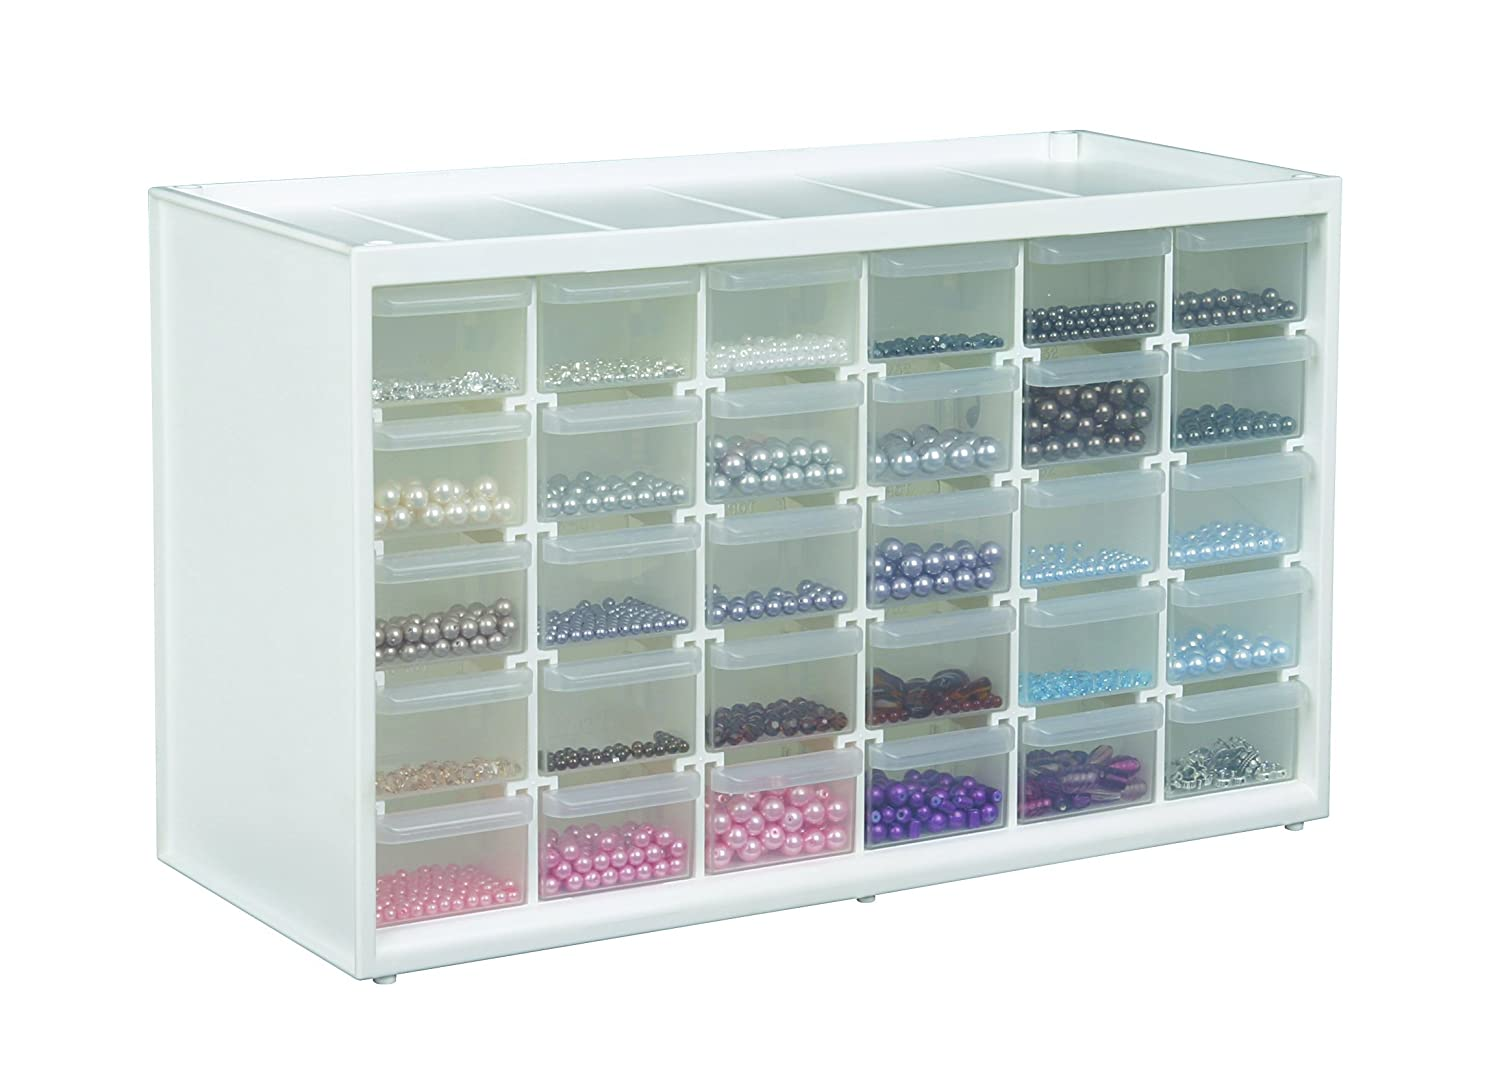 Amazon.com ArtBin Store-In-Drawer Cabinet 30 Art and Craft Supply Storage Drawers 6830PC Arts Crafts u0026 Sewing  sc 1 st  Amazon.com & Amazon.com: ArtBin Store-In-Drawer Cabinet 30 Art and Craft Supply ...